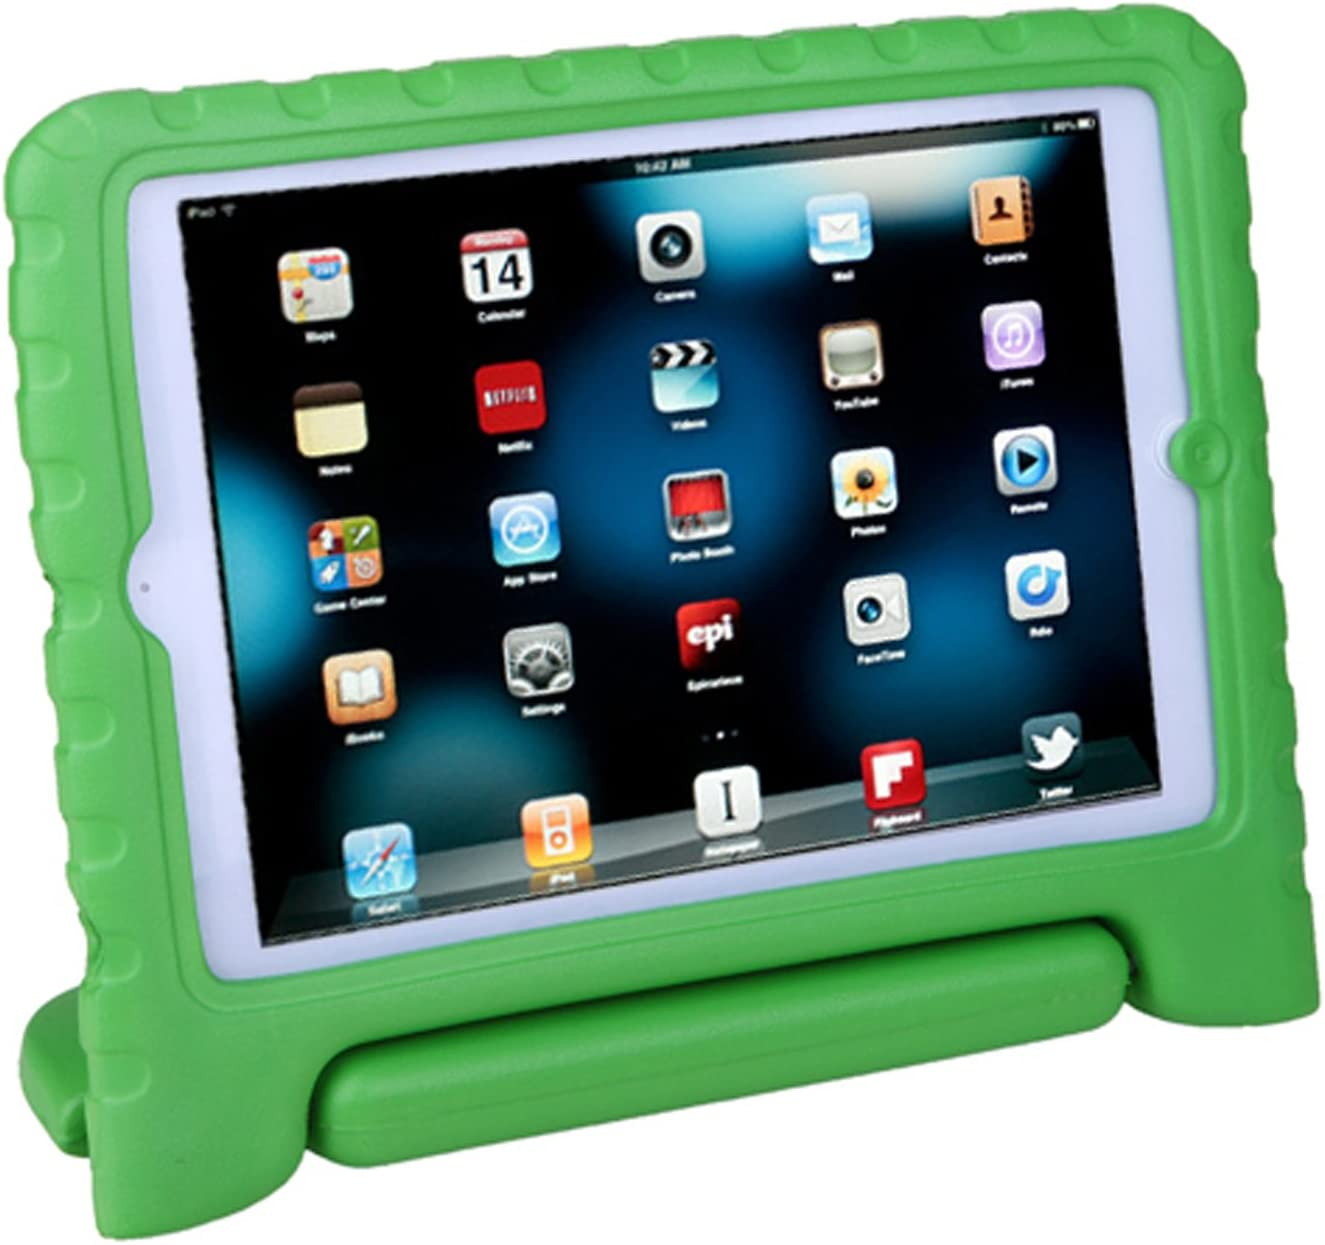 HDE Kids Case for iPad Mini 2 3 -Shock Proof Rugged Heavy Duty Impact Resistant Protective Cover Handle Stand for Apple iPad Mini 1 2 3 Retina (Green)